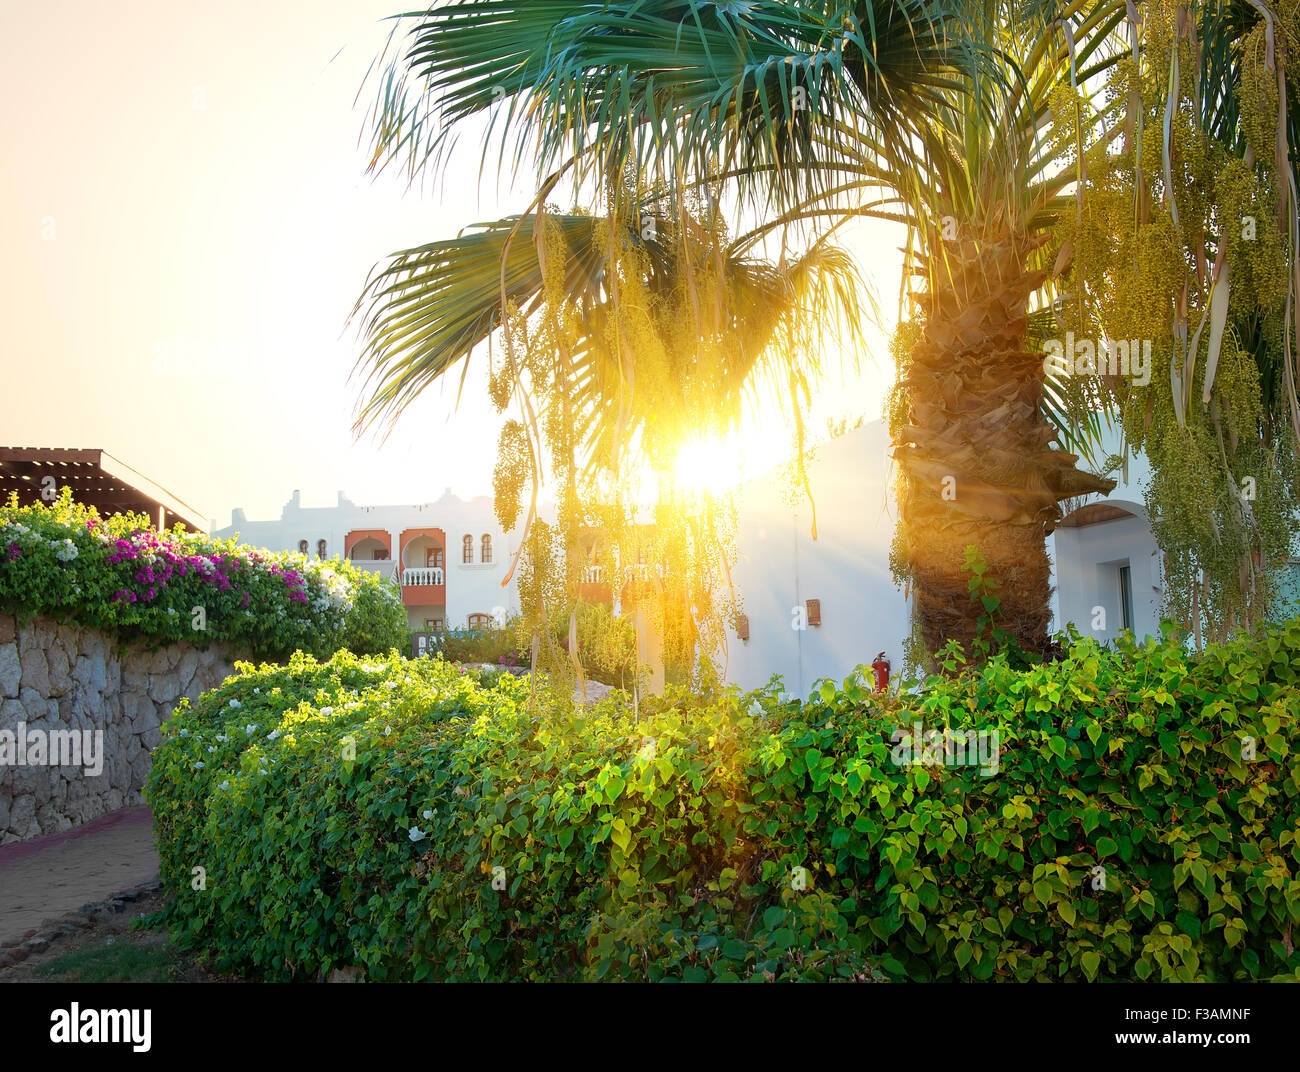 Lever de soleil sur lumineux resort hotel en Egypte Photo Stock